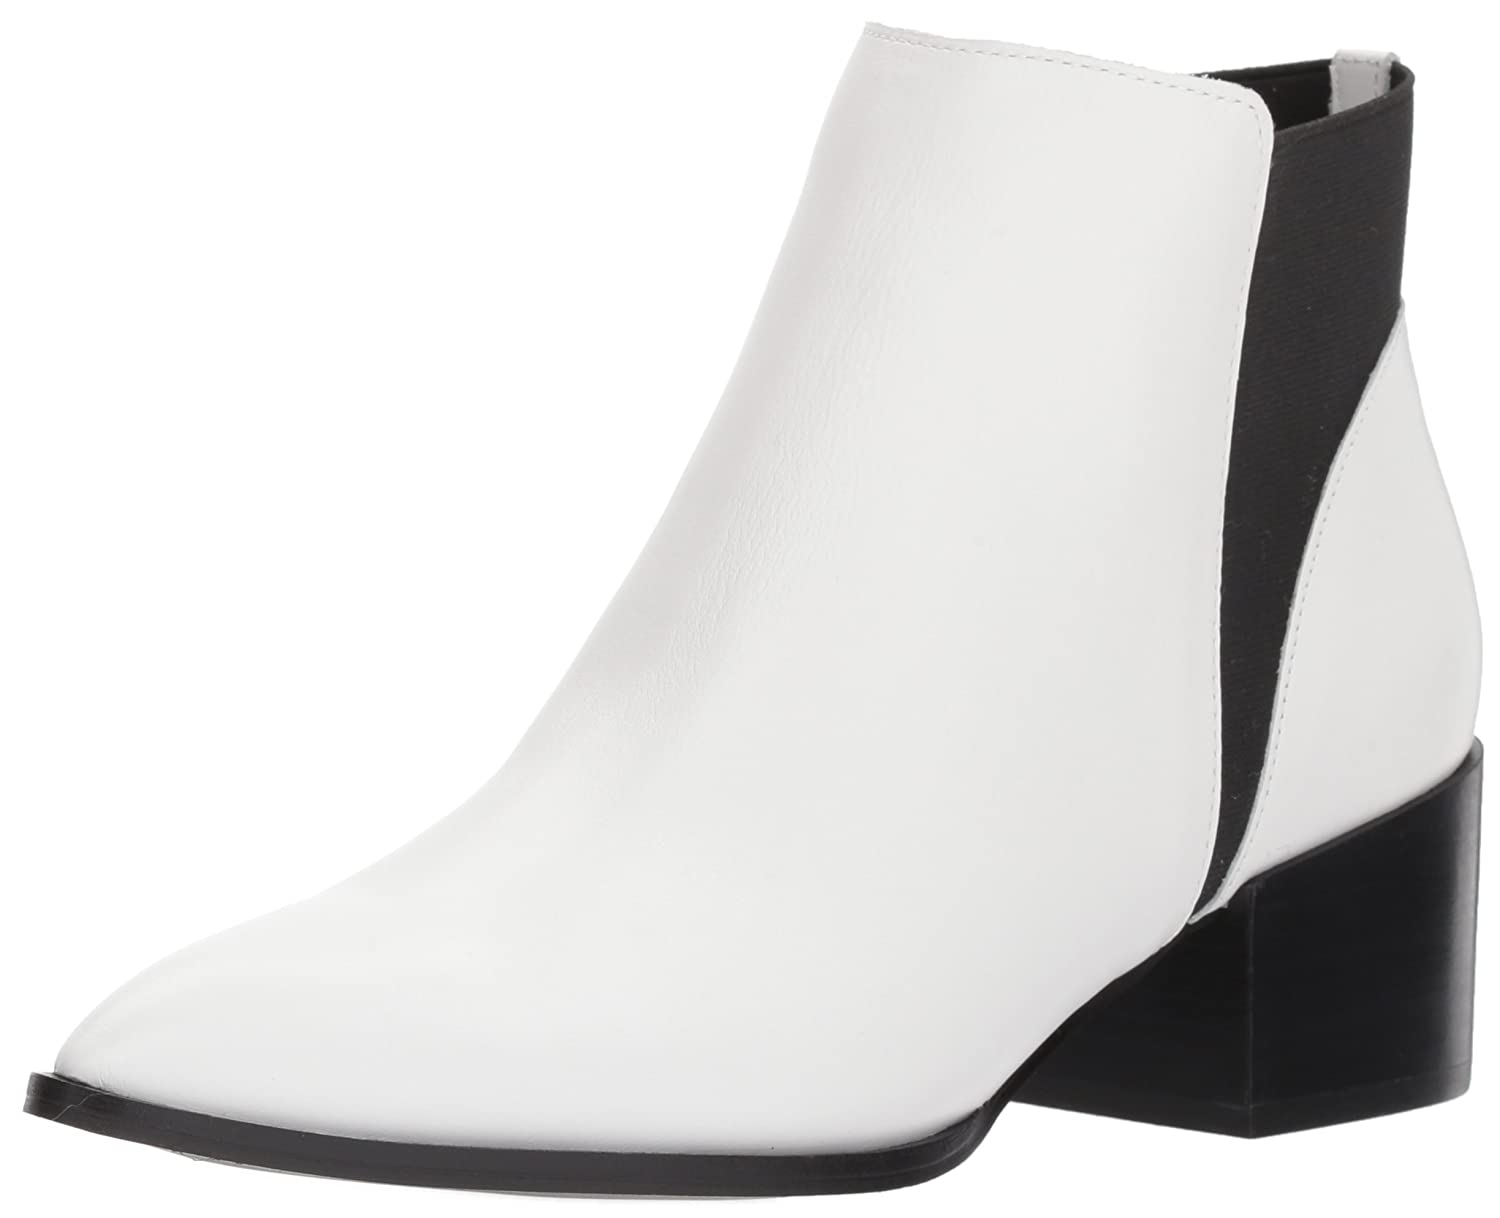 Chinese Laundry Women's Finn Ankle Bootie B075ZPL4S3 6.5 B(M) US|White Leather